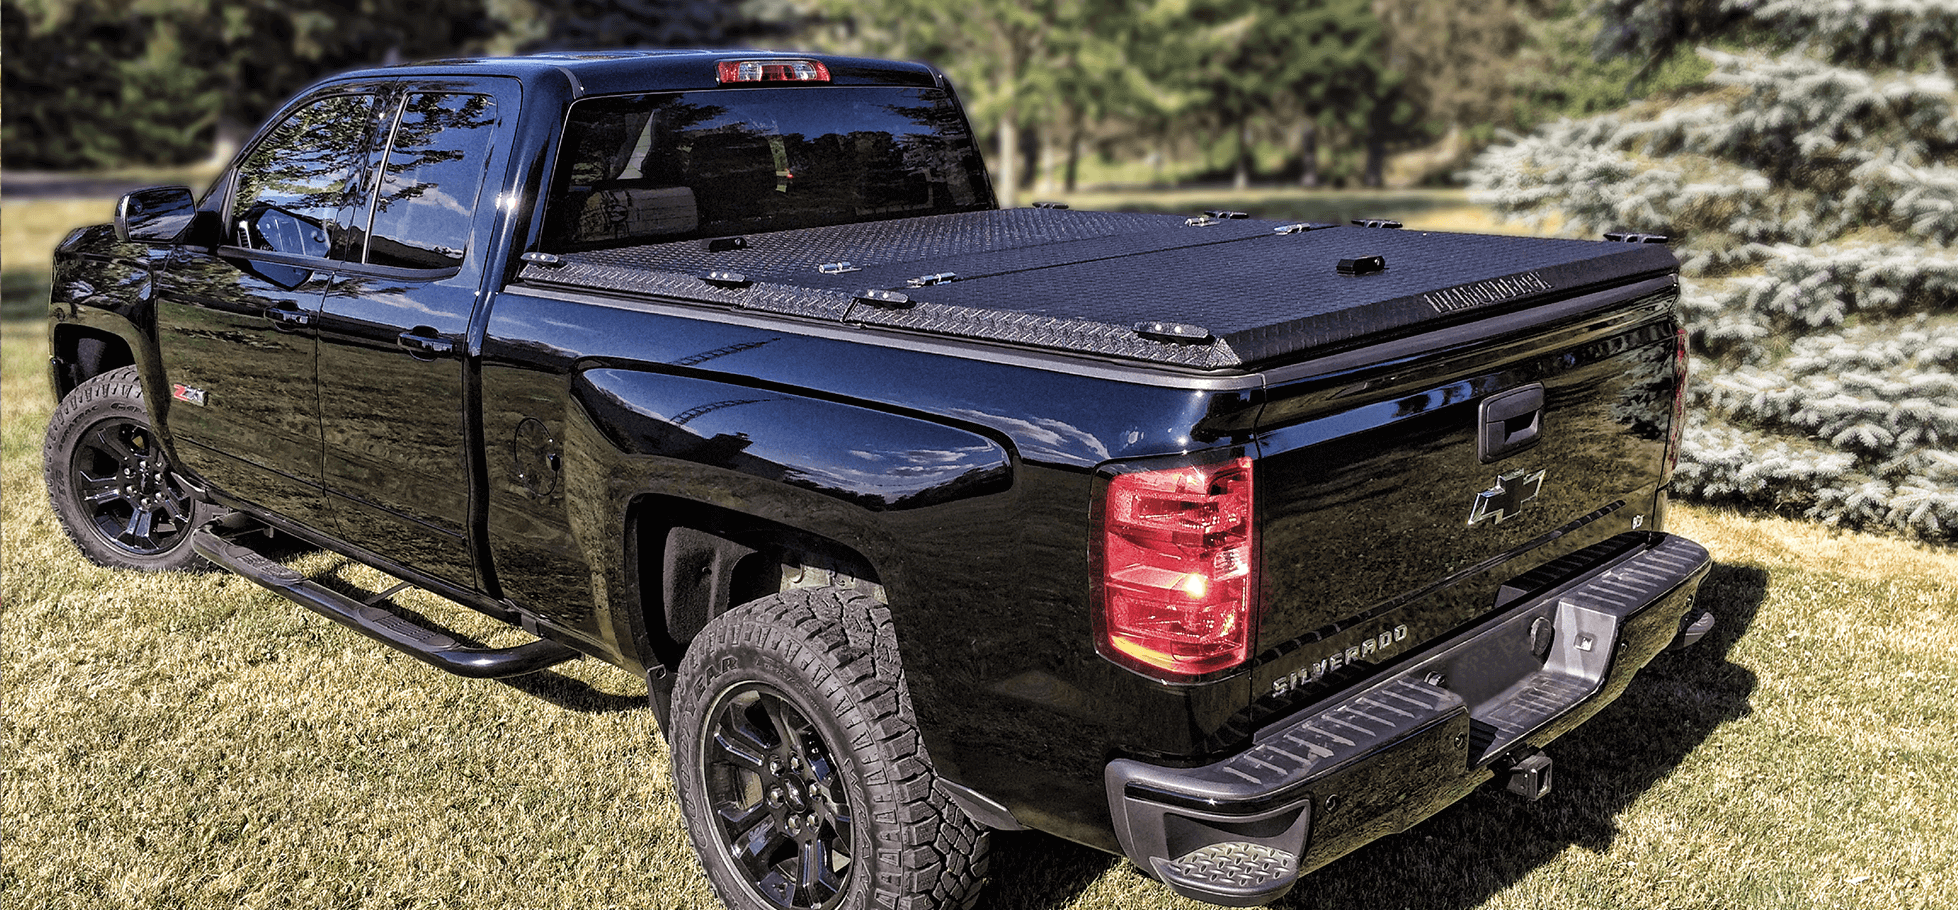 HD diamond plate bed cover on chevy silverado in trees